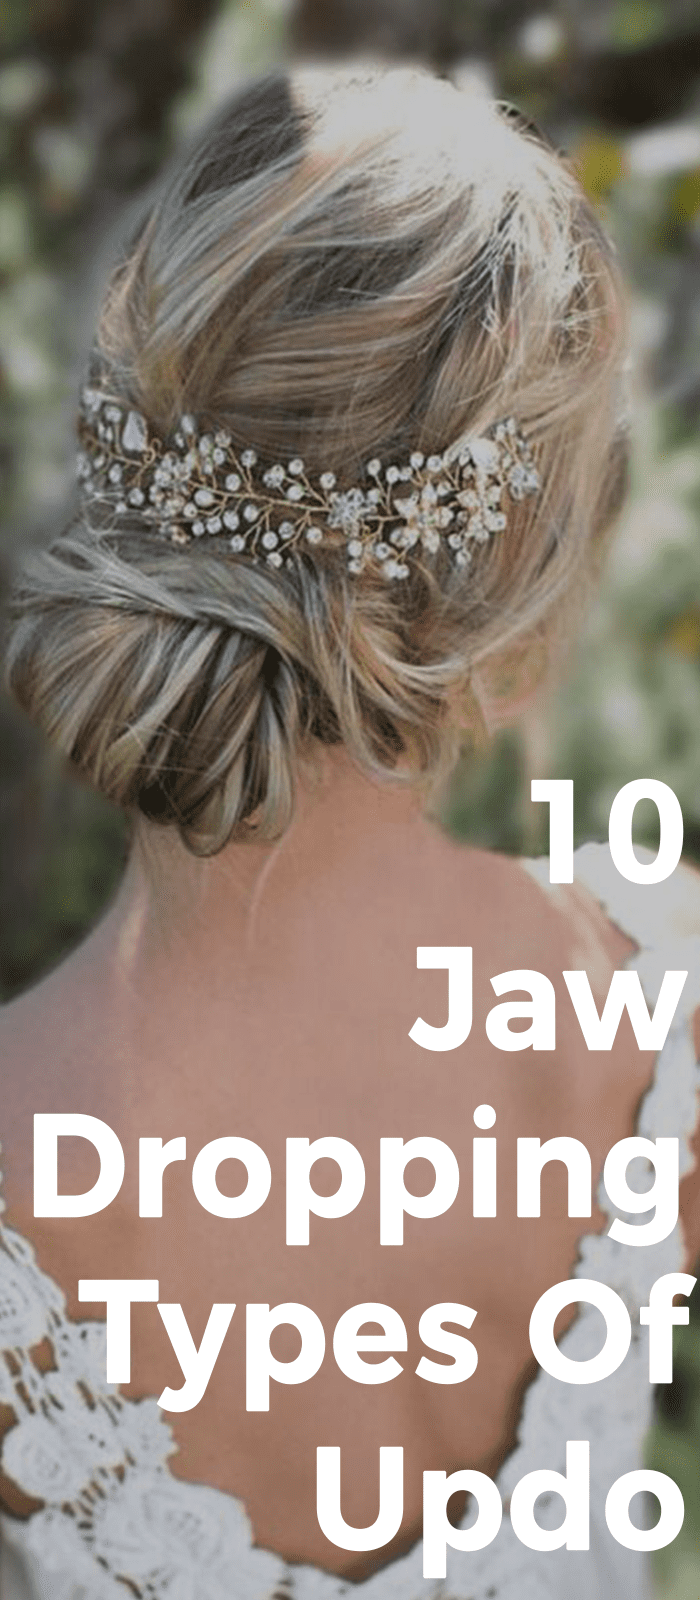 10 Jaw Dropping Types Of Updo